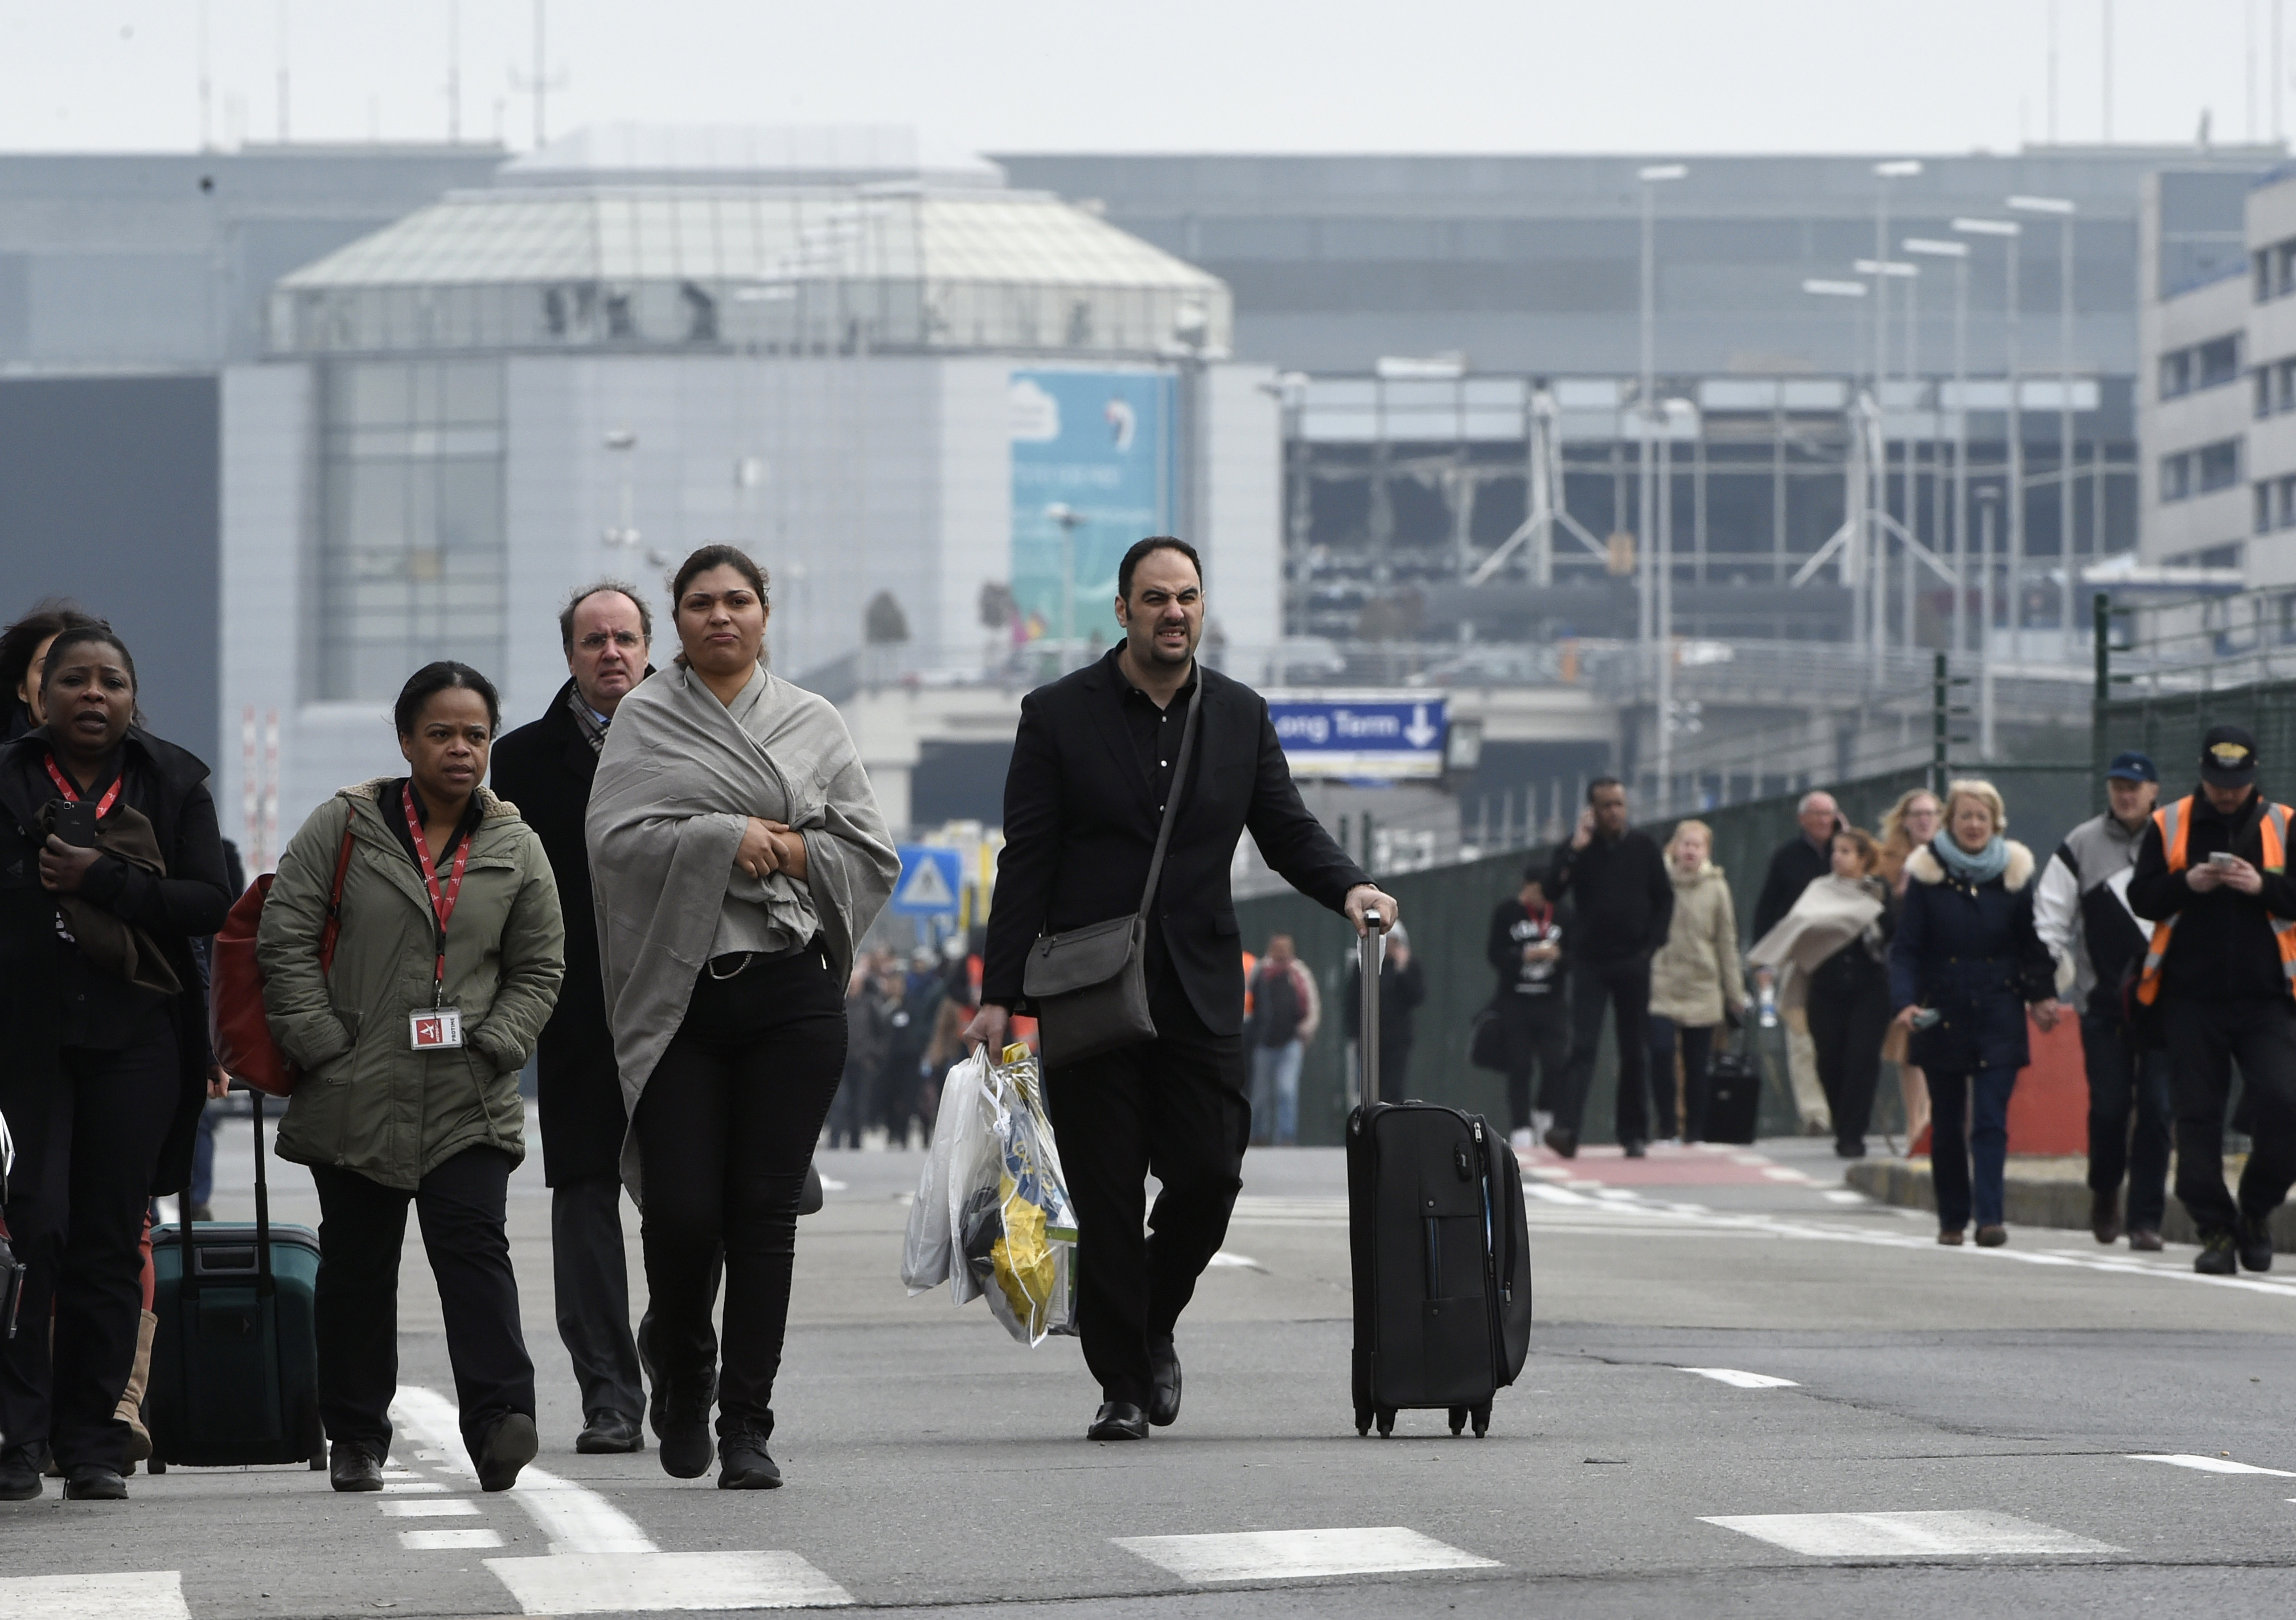 BELGIUM-ATTACKS-AIRPORT